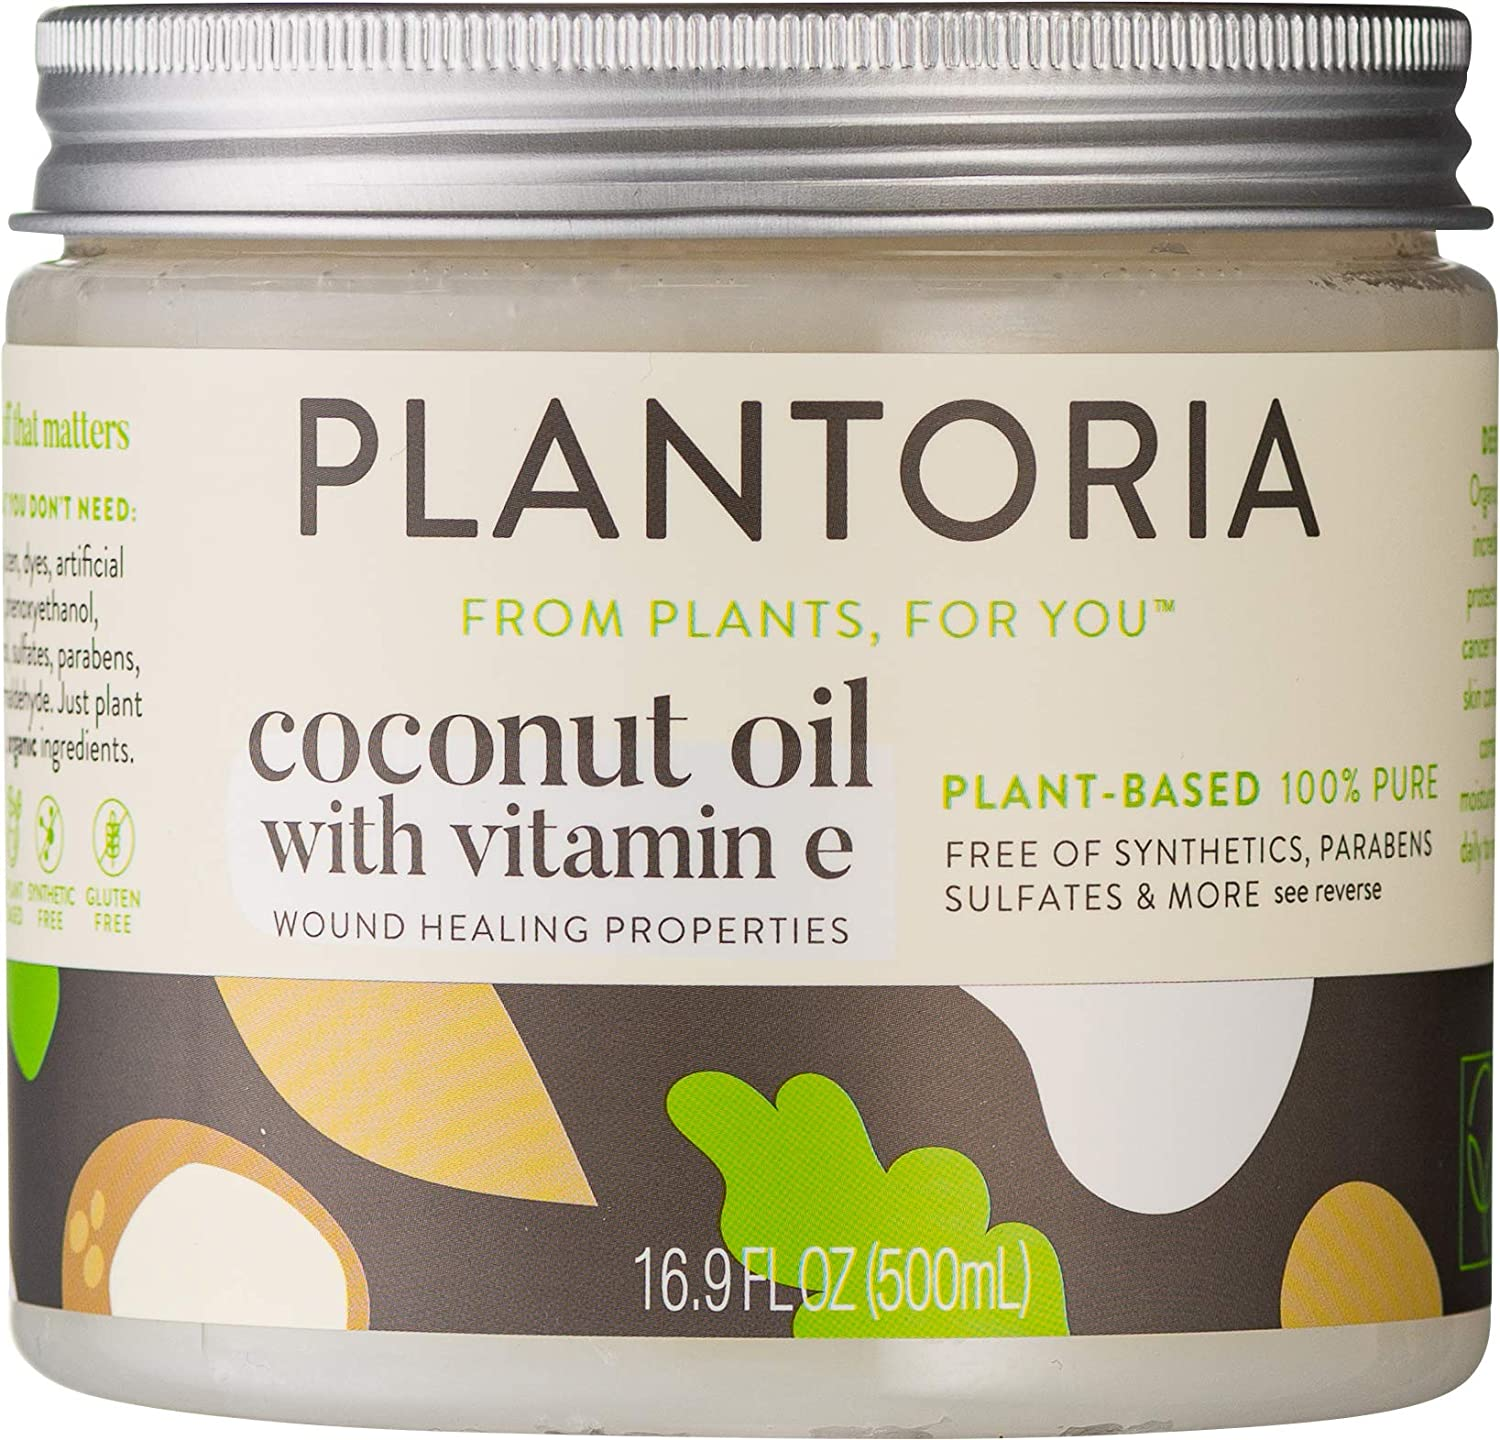 Plantoria Plant Based Organic Coconut Oil With Vitamin E | Nourishing Hydrating Pure Natural Vegan Coconut Oil For Skin | Moisturize Skin, Heal Wounds & Battle Pesky Skin Issues With Coconut Oil Cream